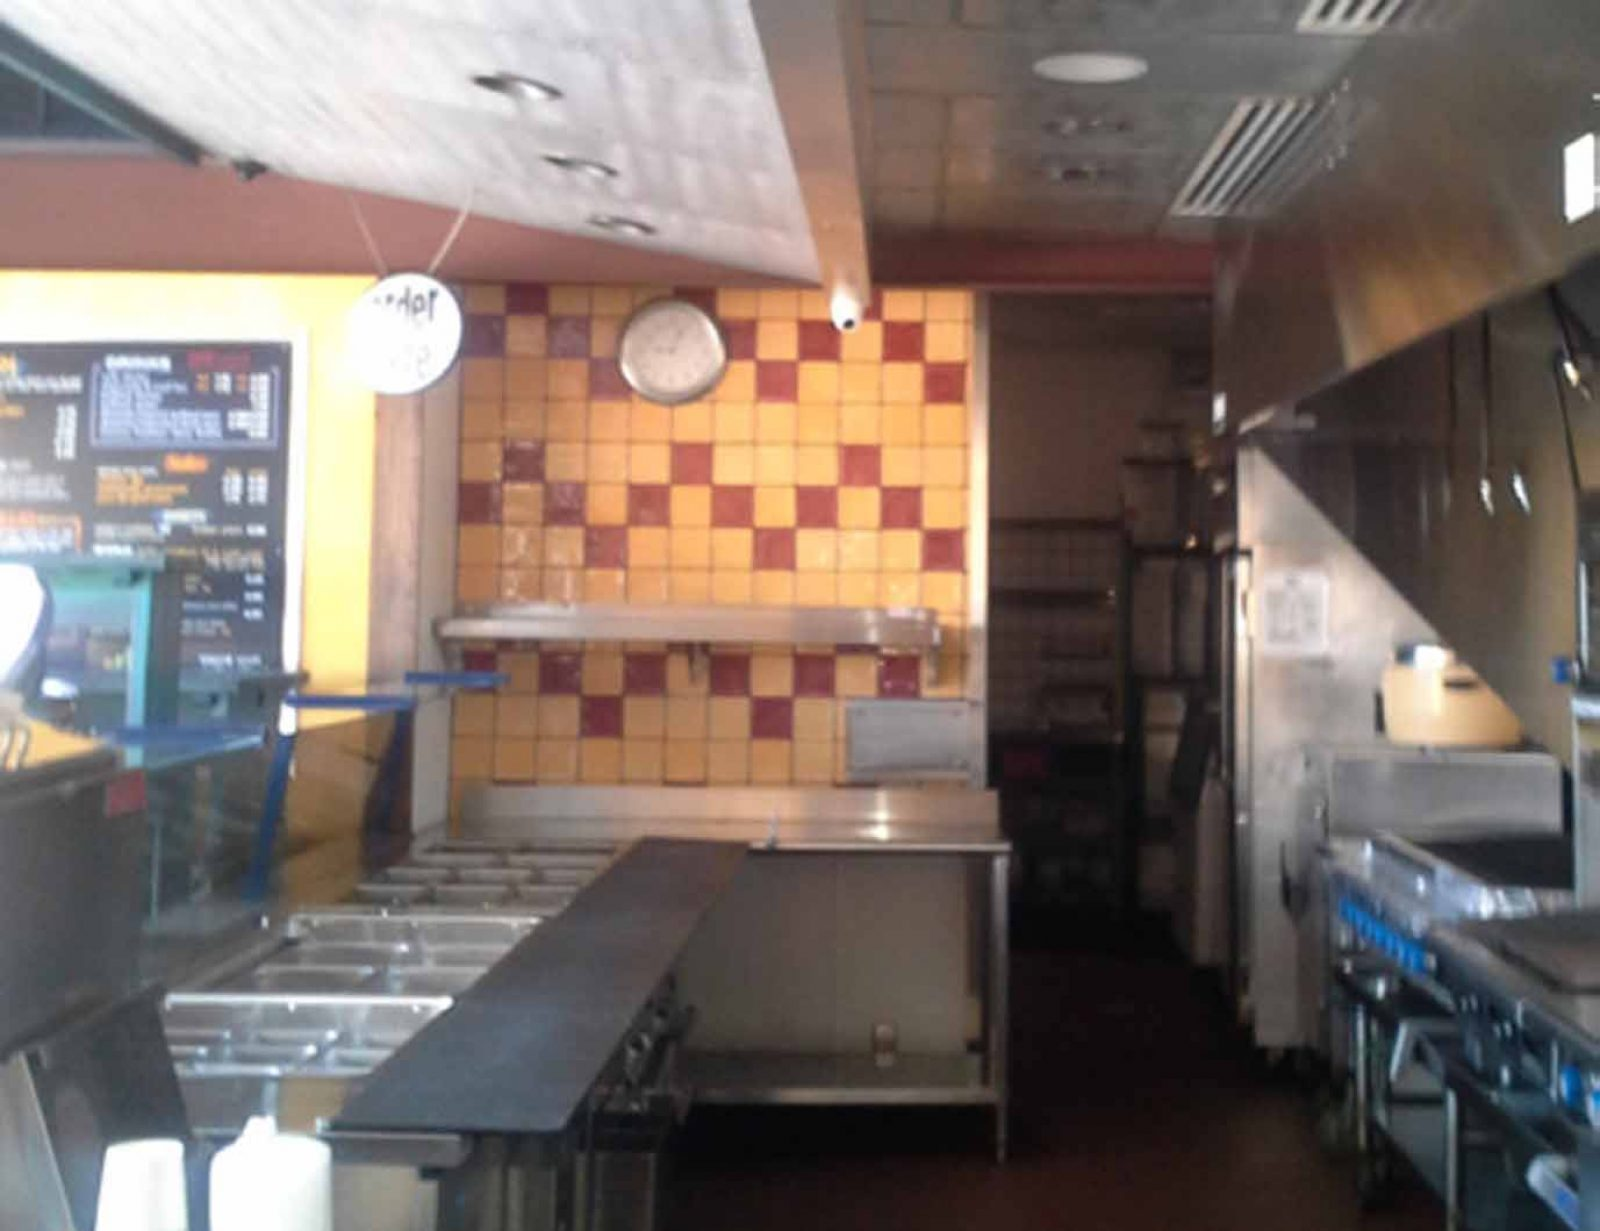 BlazePizza_Gville_UCF old kitchen